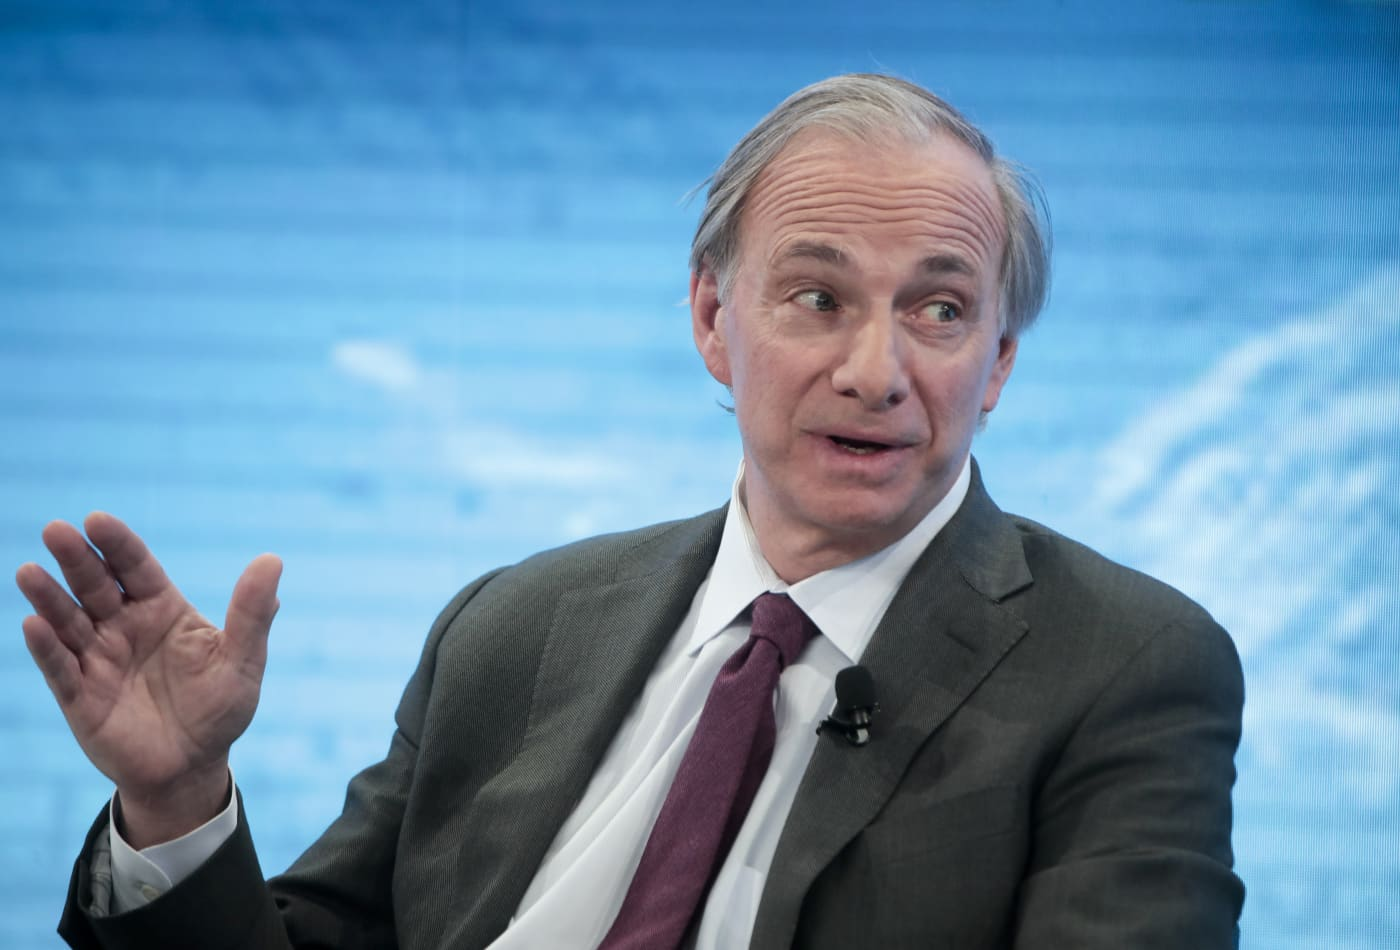 Founder of the world's largest hedge fund Ray Dalio: The people 'I respect most' do this well